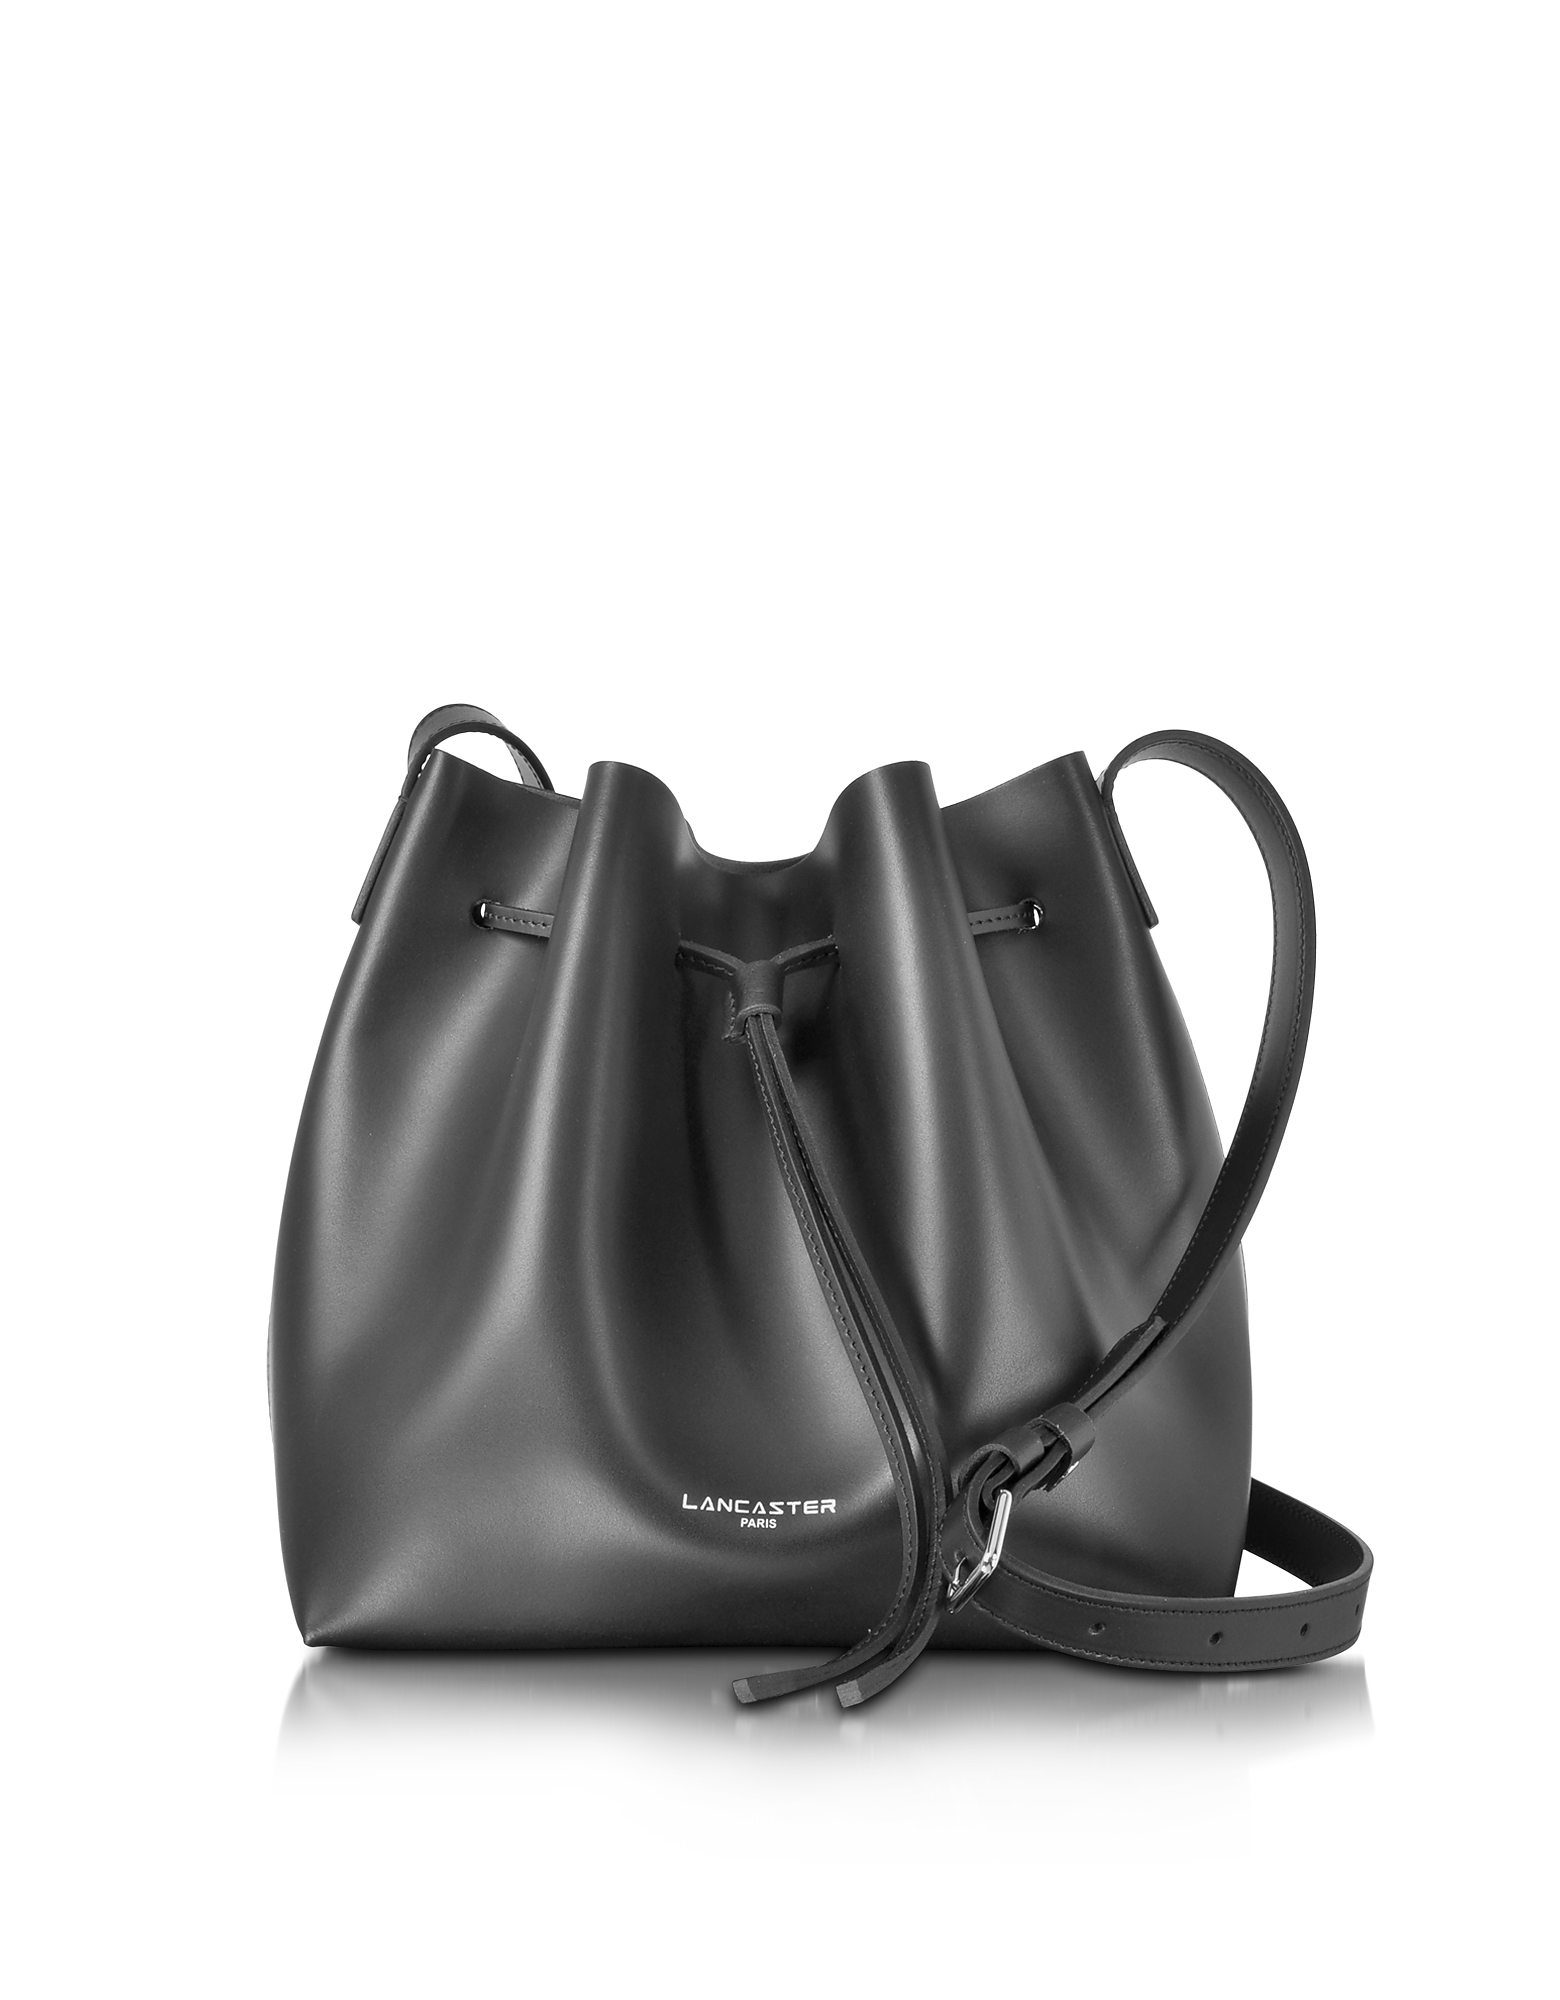 Lancaster Paris Designer Handbags, Pur Smooth Leather Bucket Bag (Luggage & Bags) photo